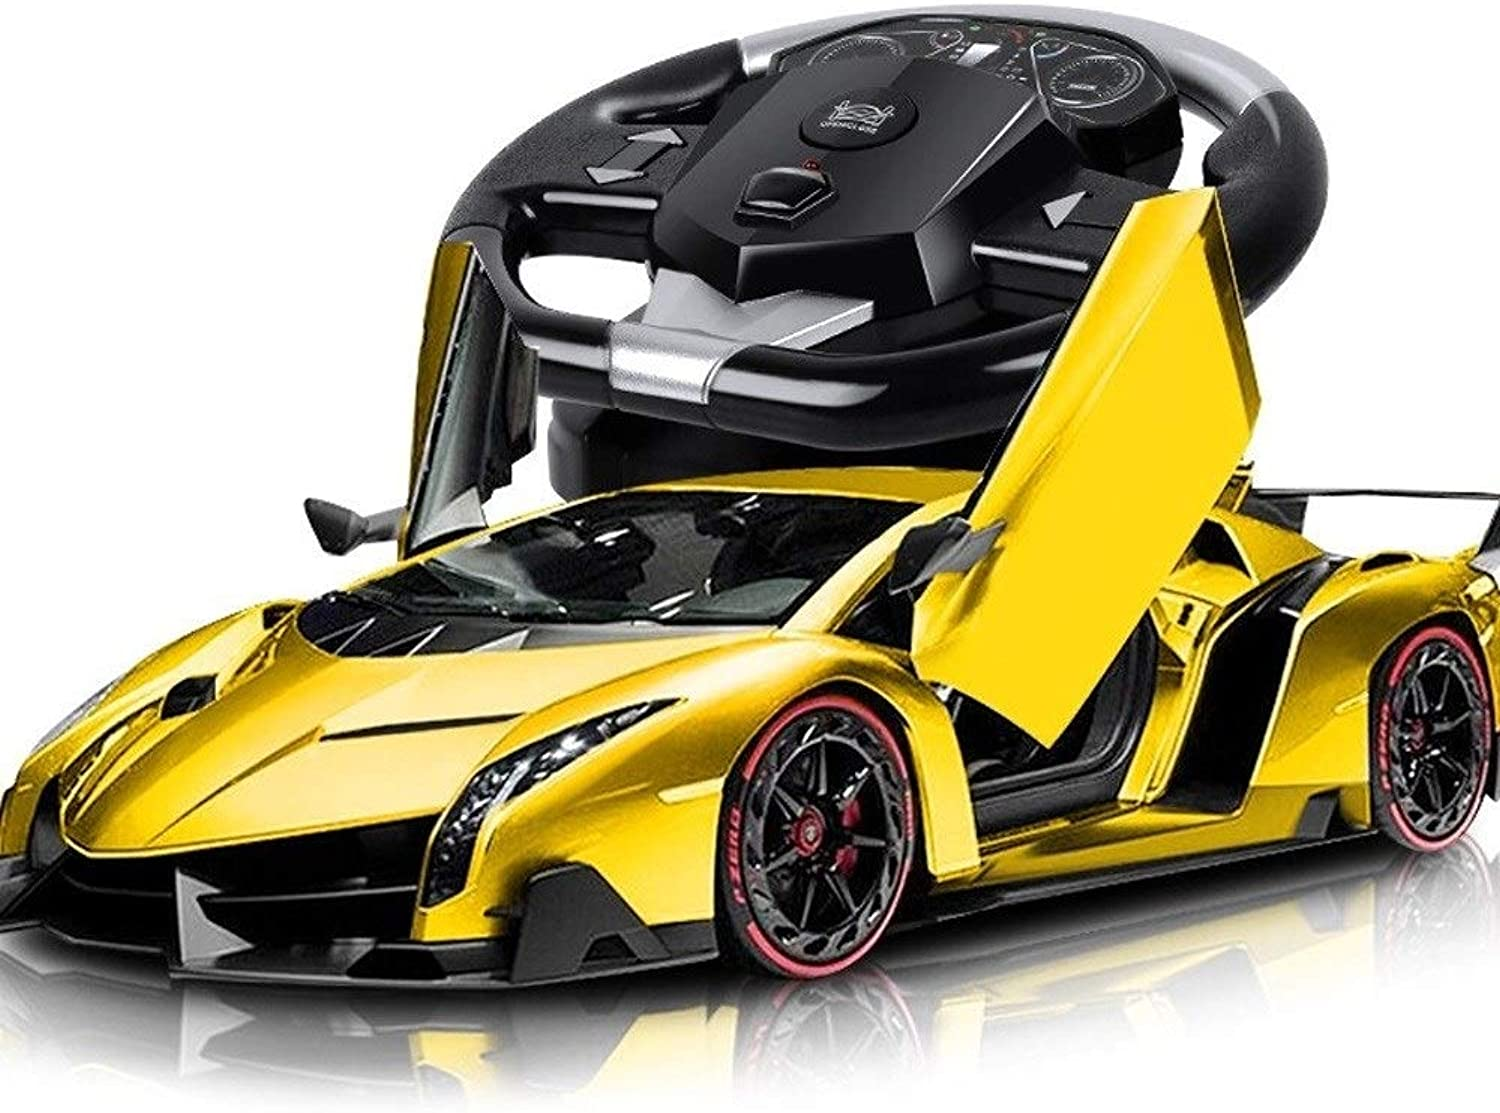 Kiki Remote Control Supercar 1 /10 Electric Recharable Radio Controlled 2.4G RC Auto Drifting Race Model Electronic Sports Racing con Flashing Light  ldren Holiday Gifts Yellow